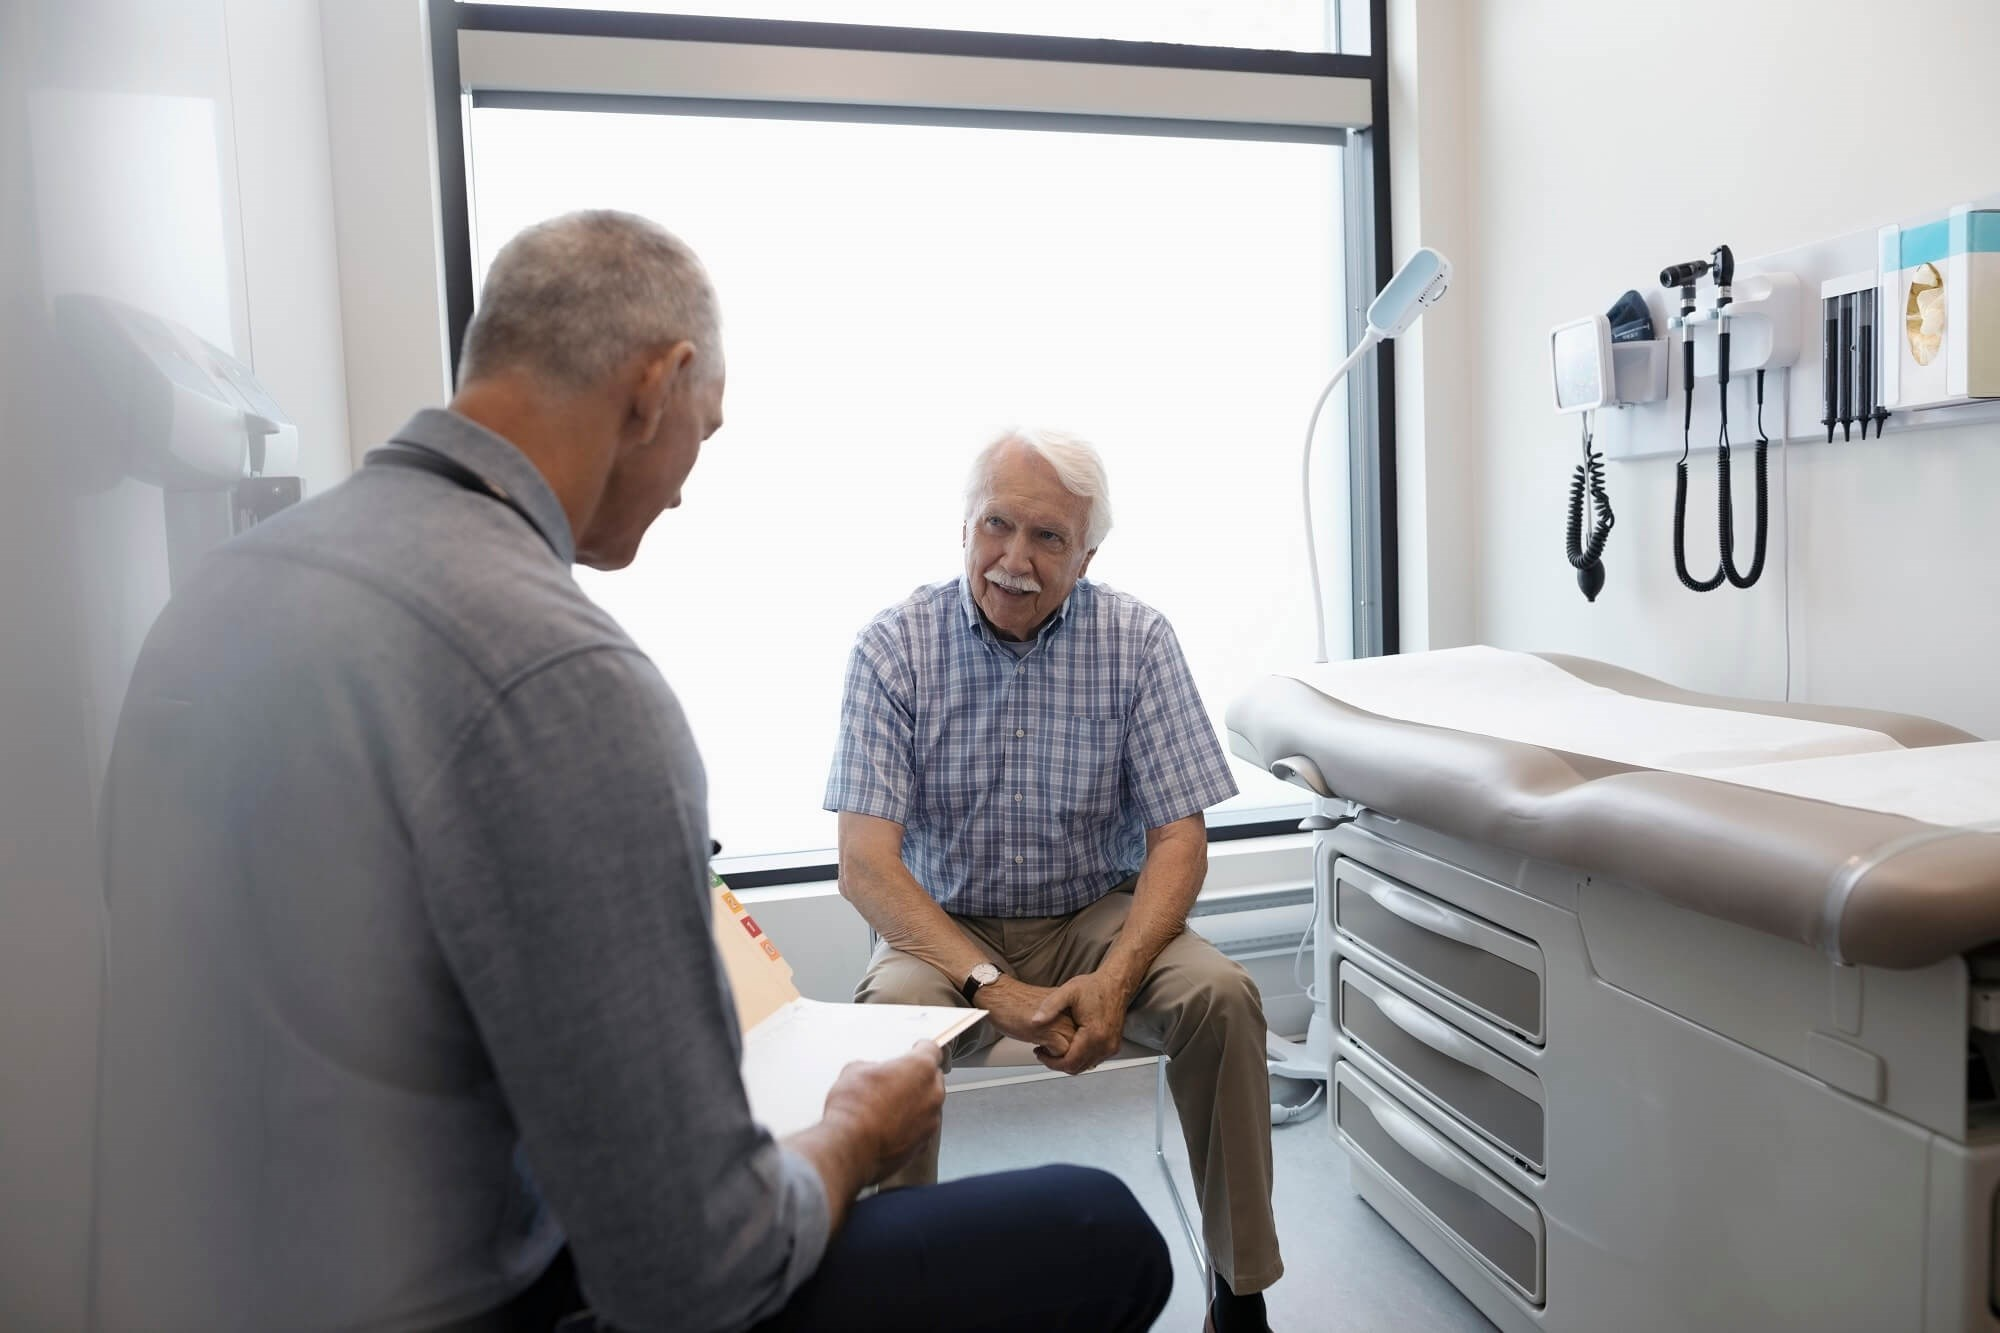 Data suggest that intervention designs studied in randomized controlled trials may not be typically applicable to the elderly population.